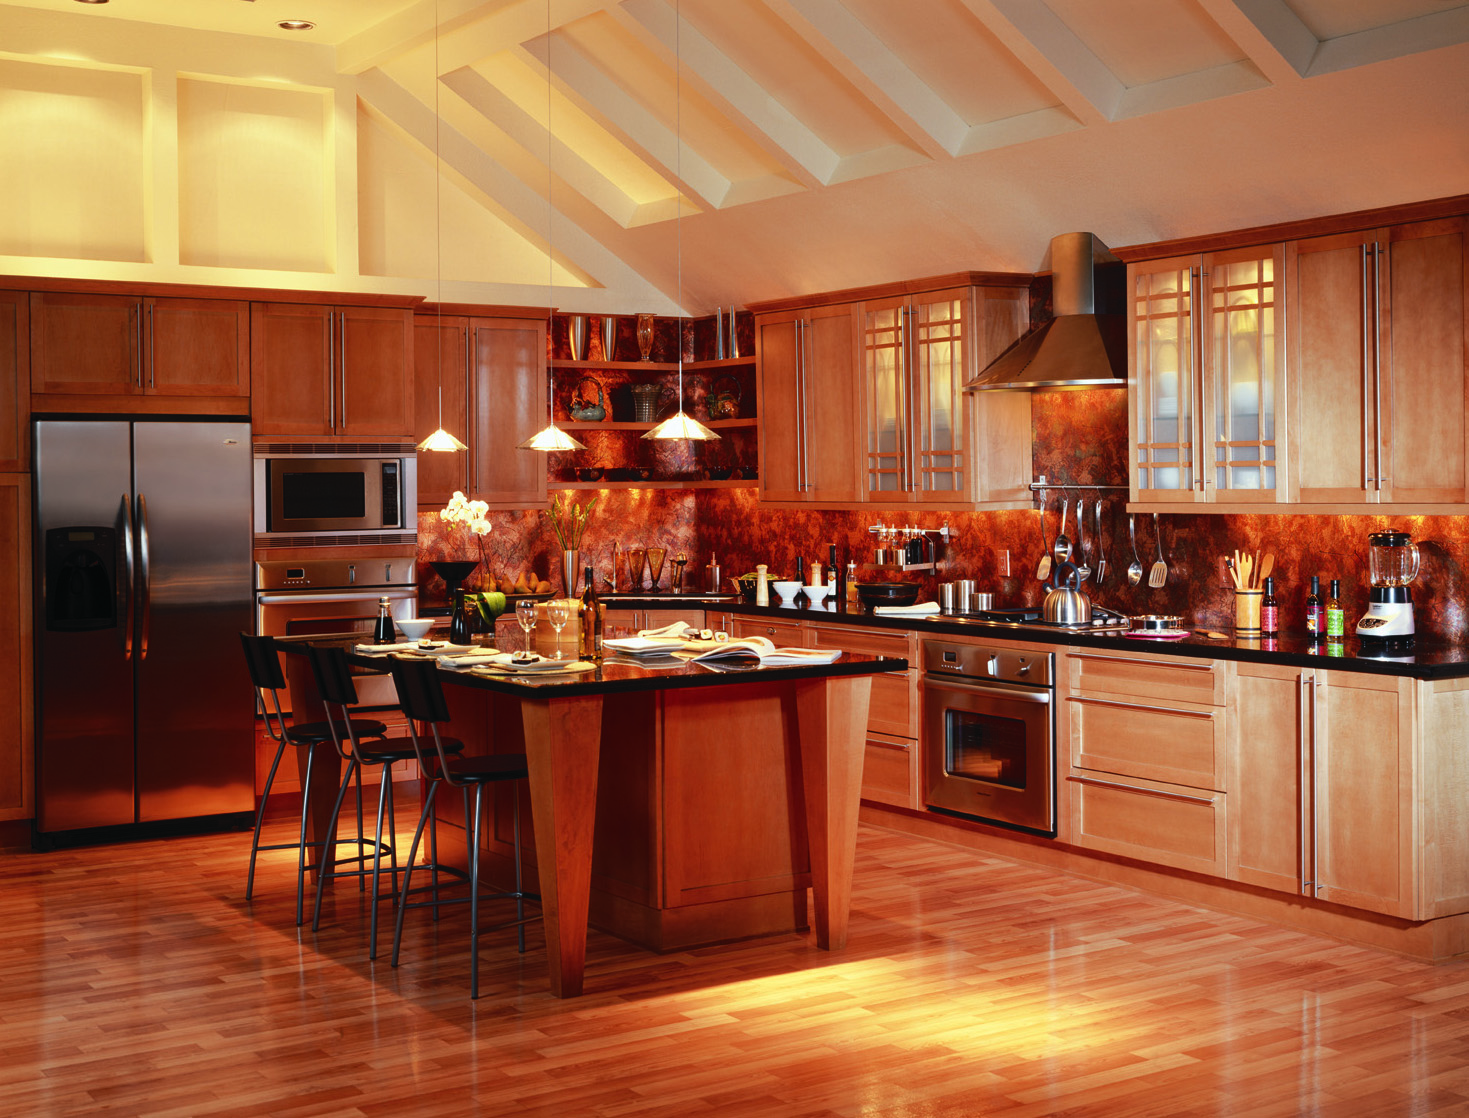 shaker-kitchen-1-rt-.jpg